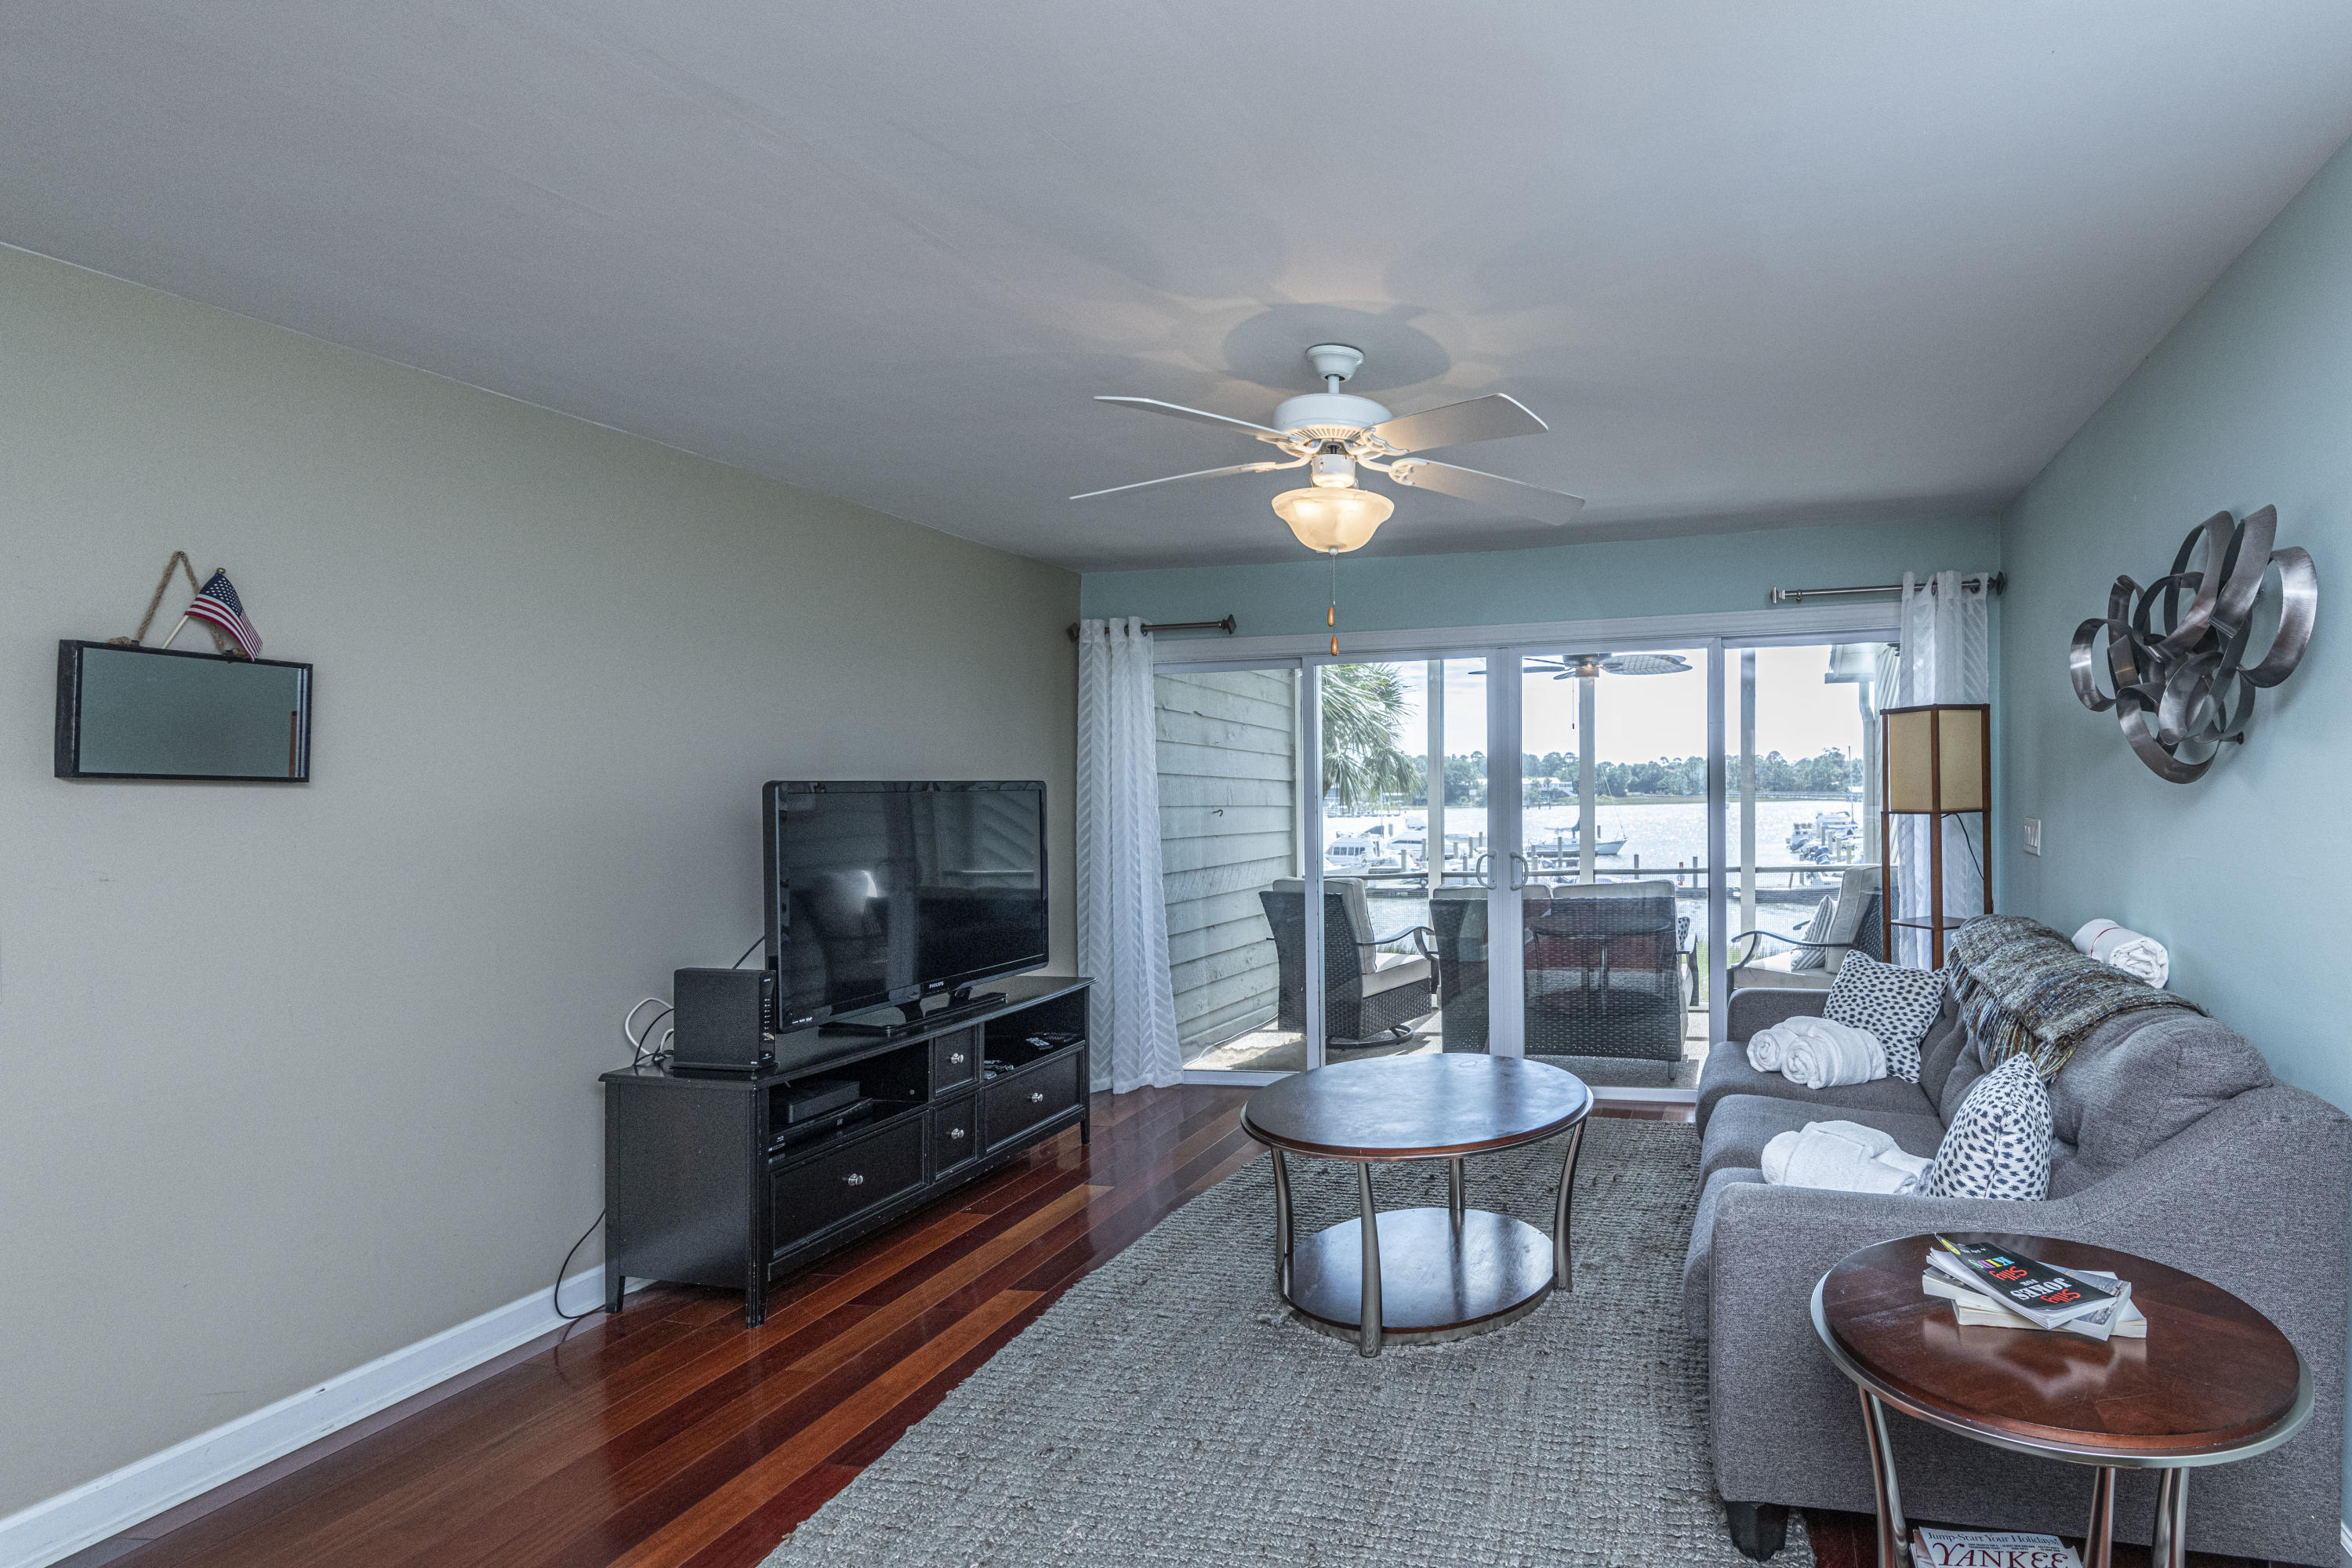 Mariners Cay Homes For Sale - 60 Mariners Cay, Folly Beach, SC - 40